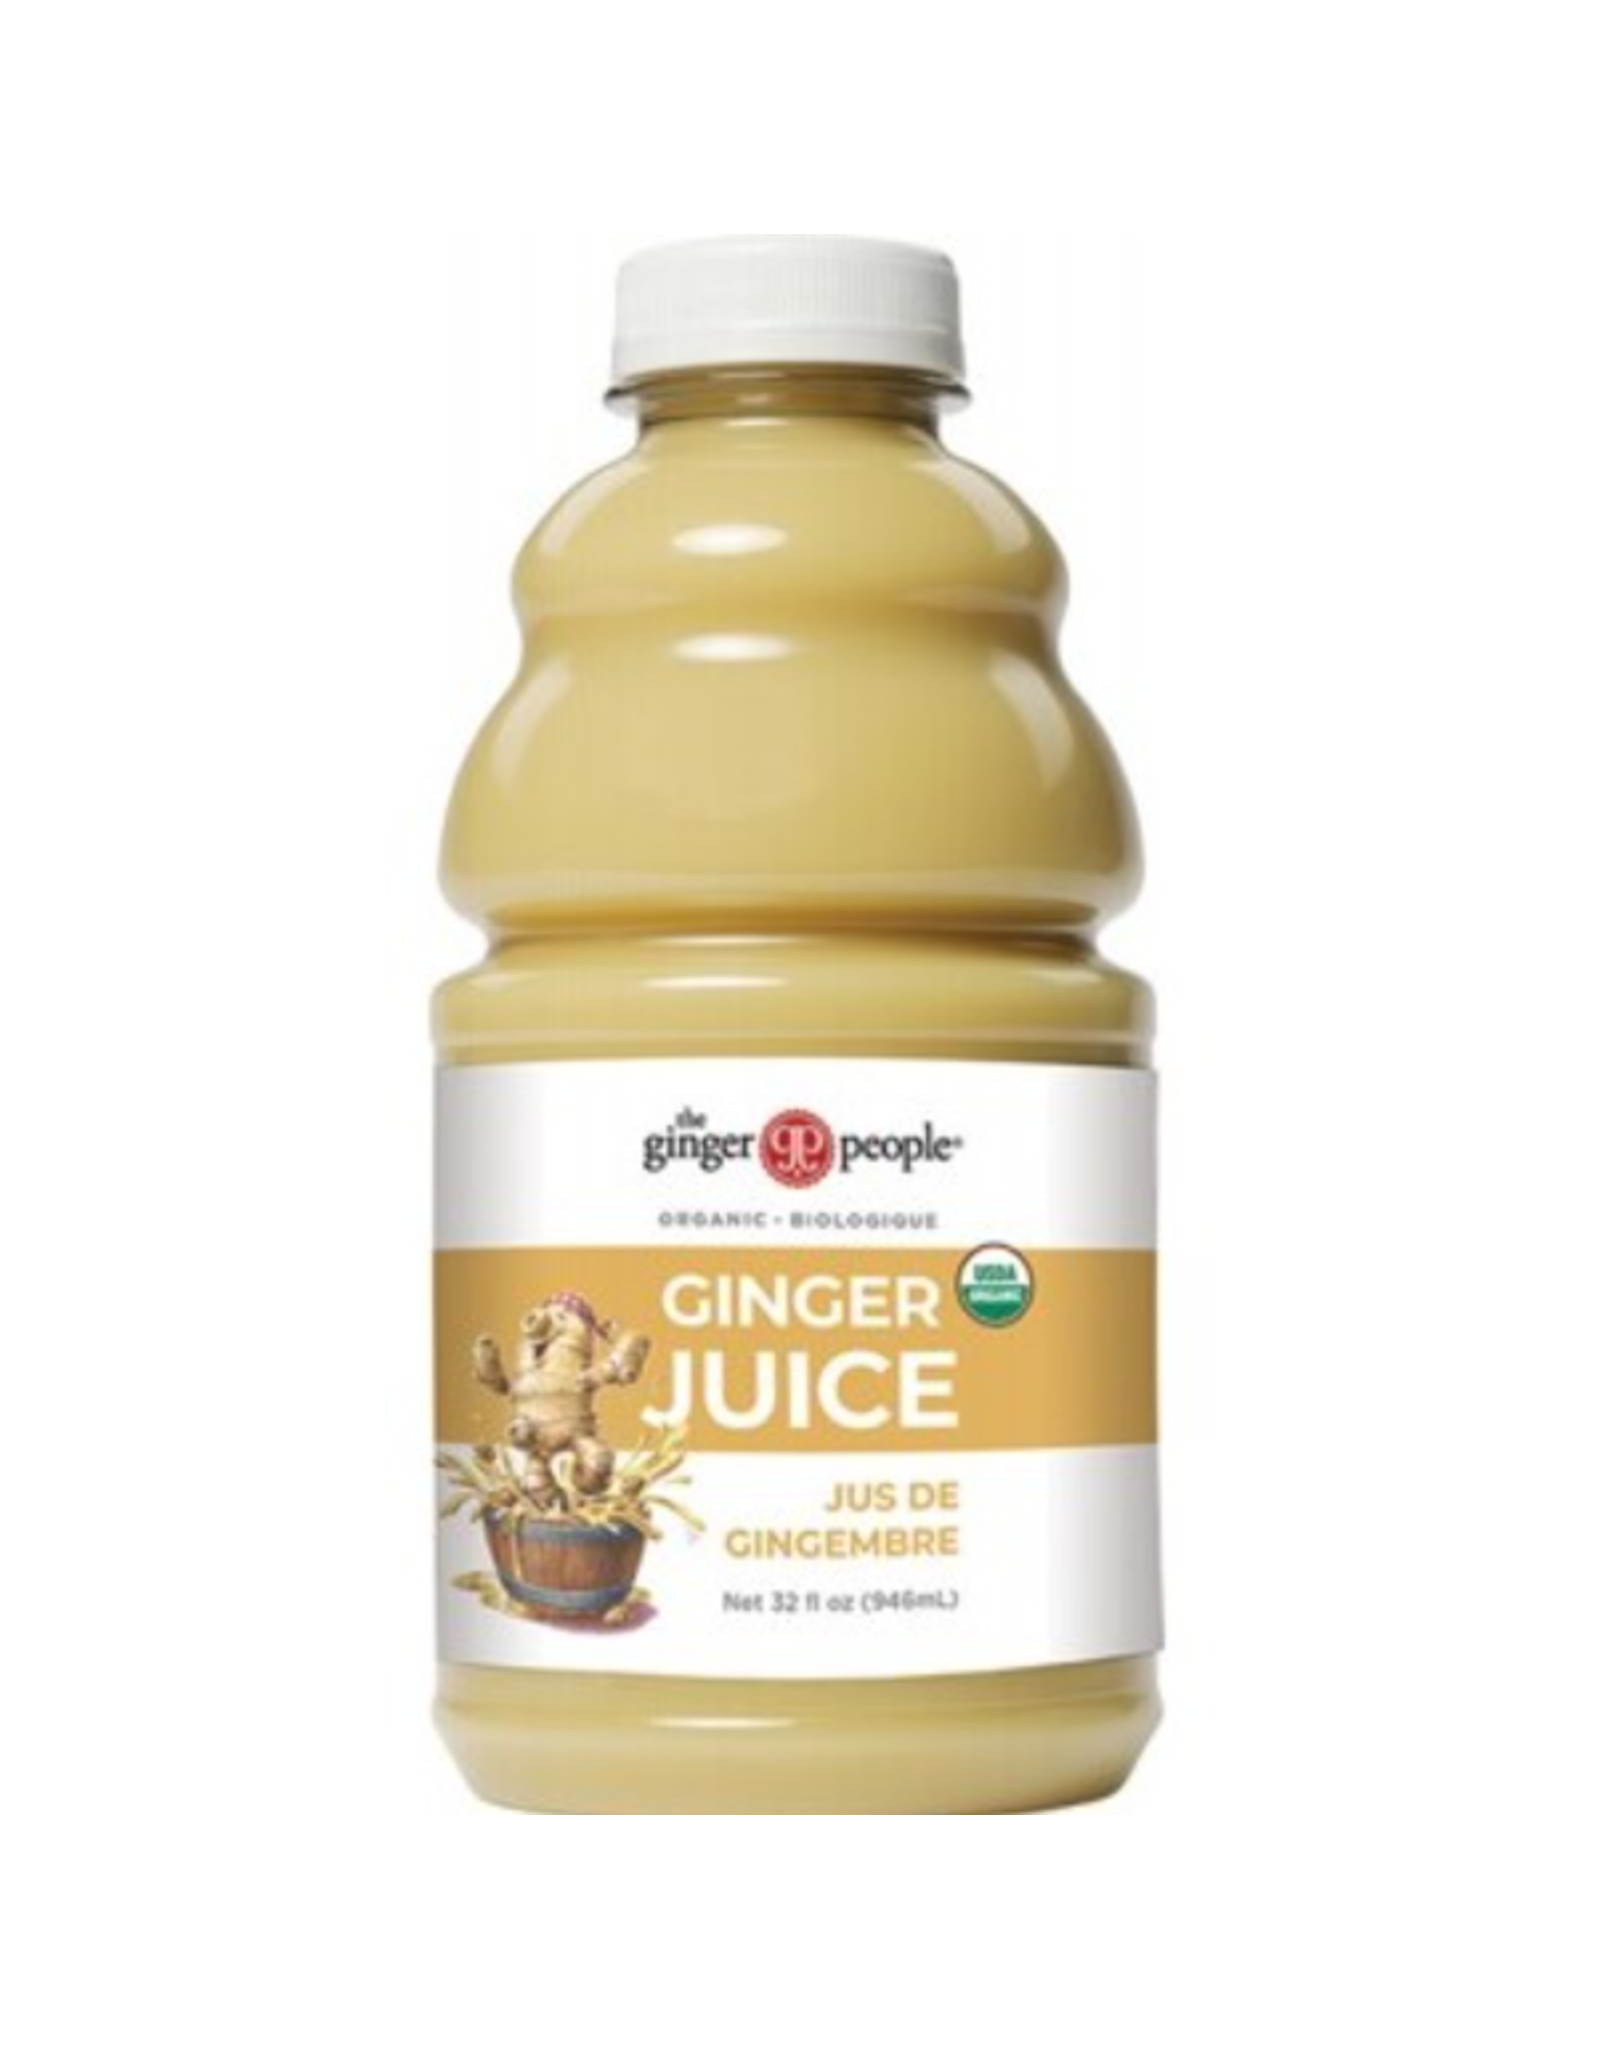 The Ginger People Ginger Juice